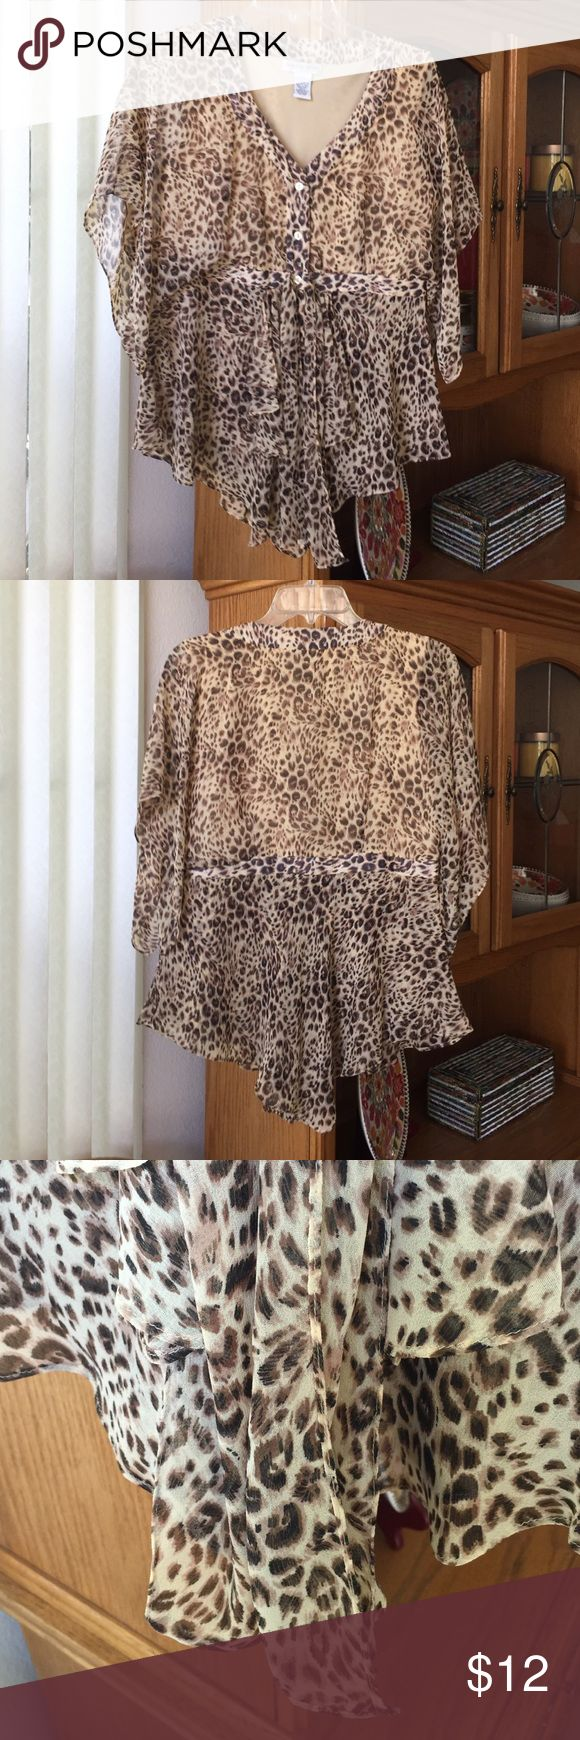 Leopard Tapered Blouse Beautiful leopard blouse with buttons down the front. Fully lined and has tapered fabric that hangs shorter on the sides. In perfect condition! Newport News Tops Blouses